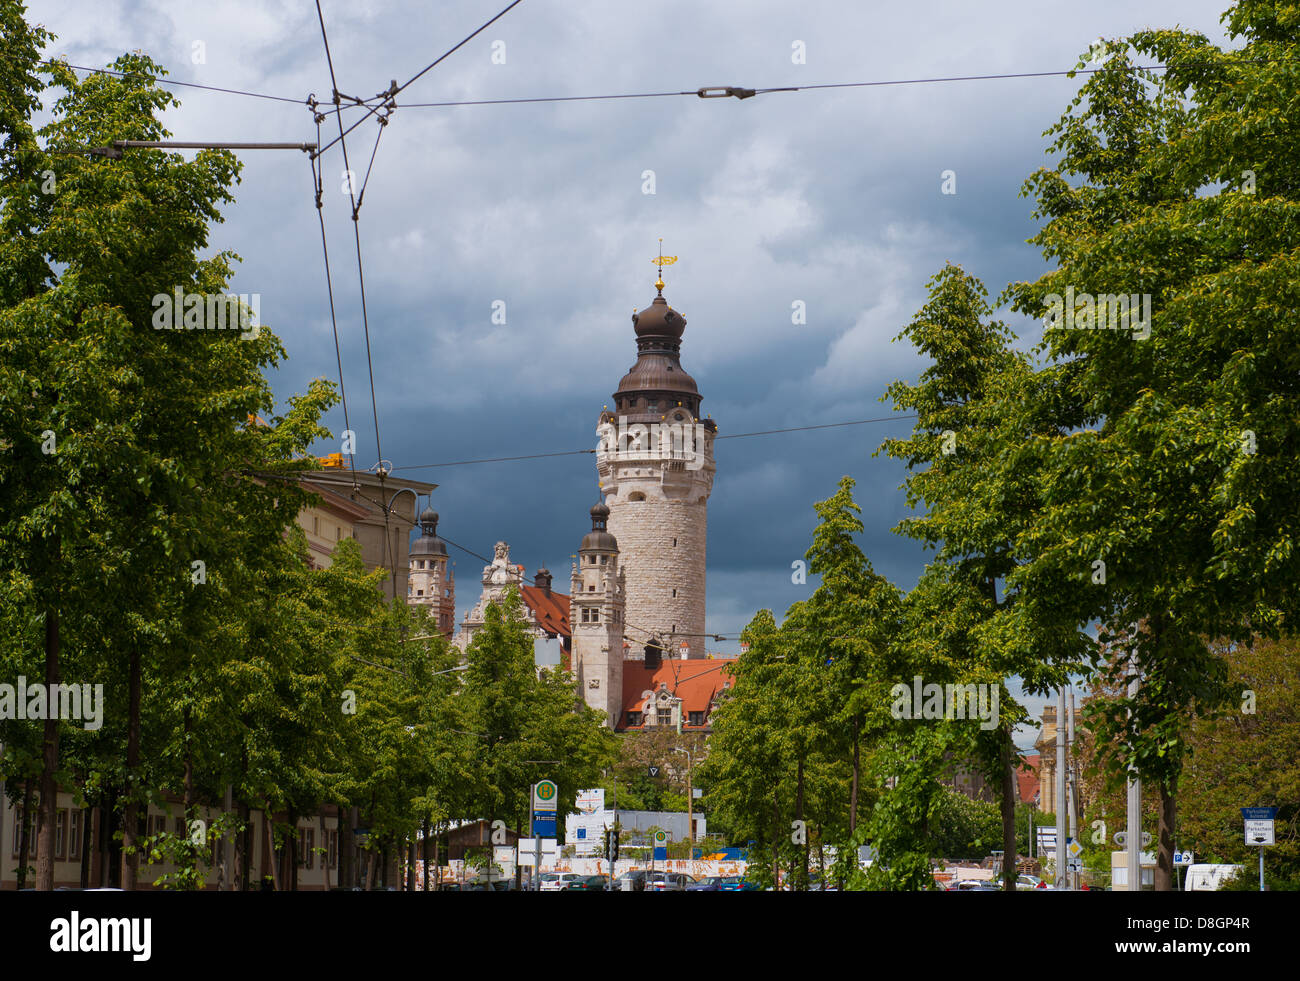 View of the Neues Rathaus in Leipzig from the south - Stock Image